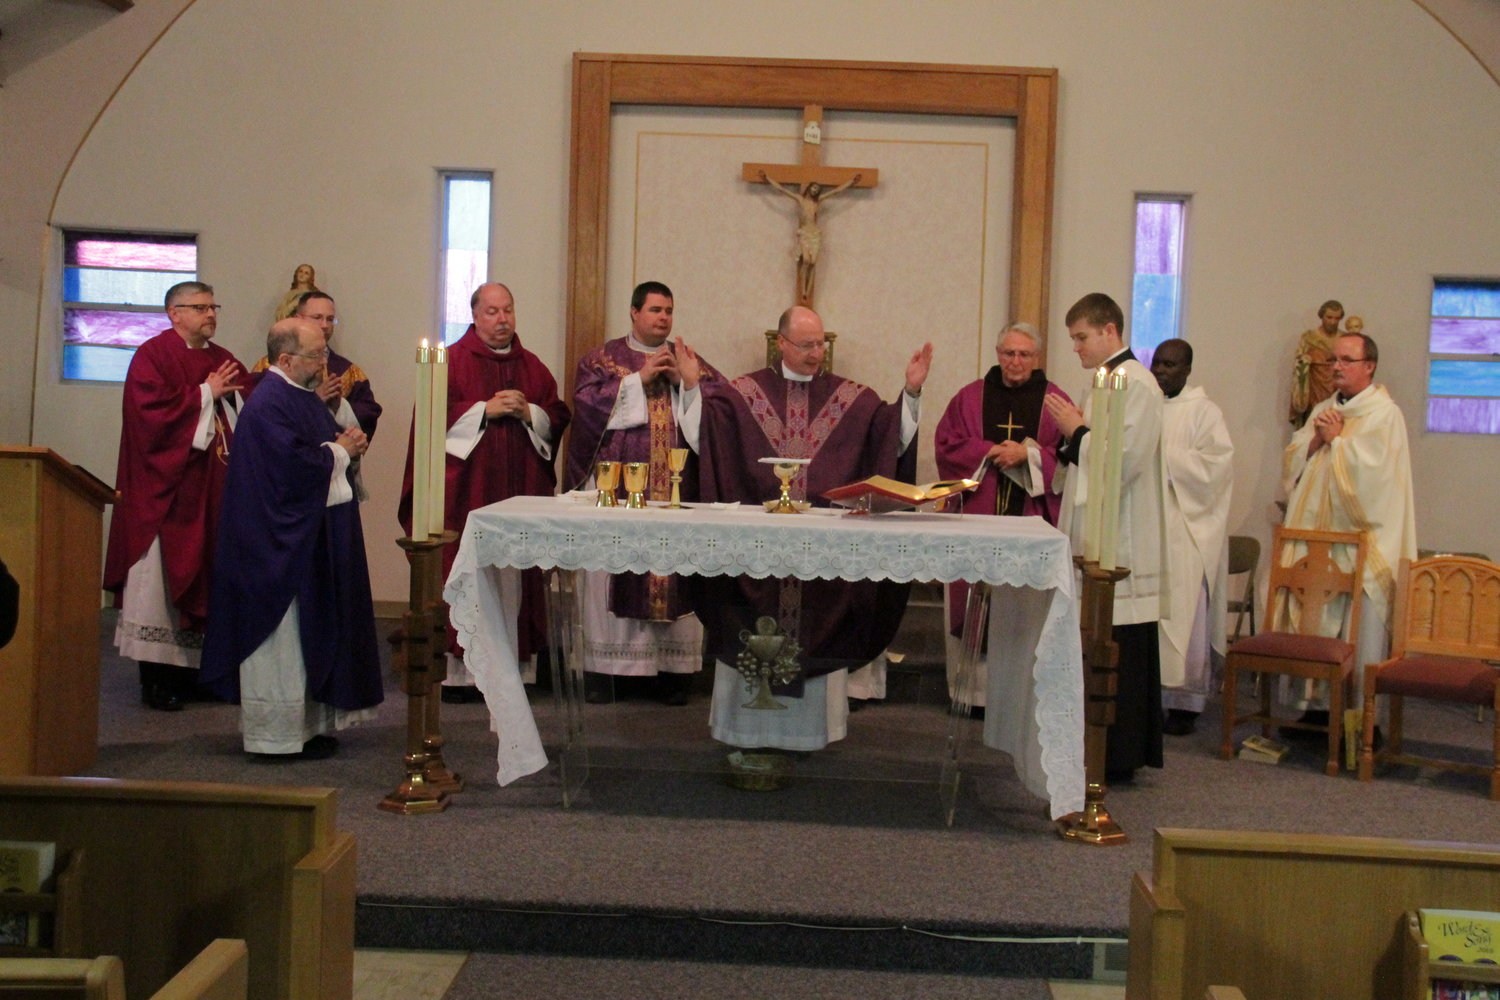 Bishop McKnight and concelebrating priests pray the Eucharistic Prayer.